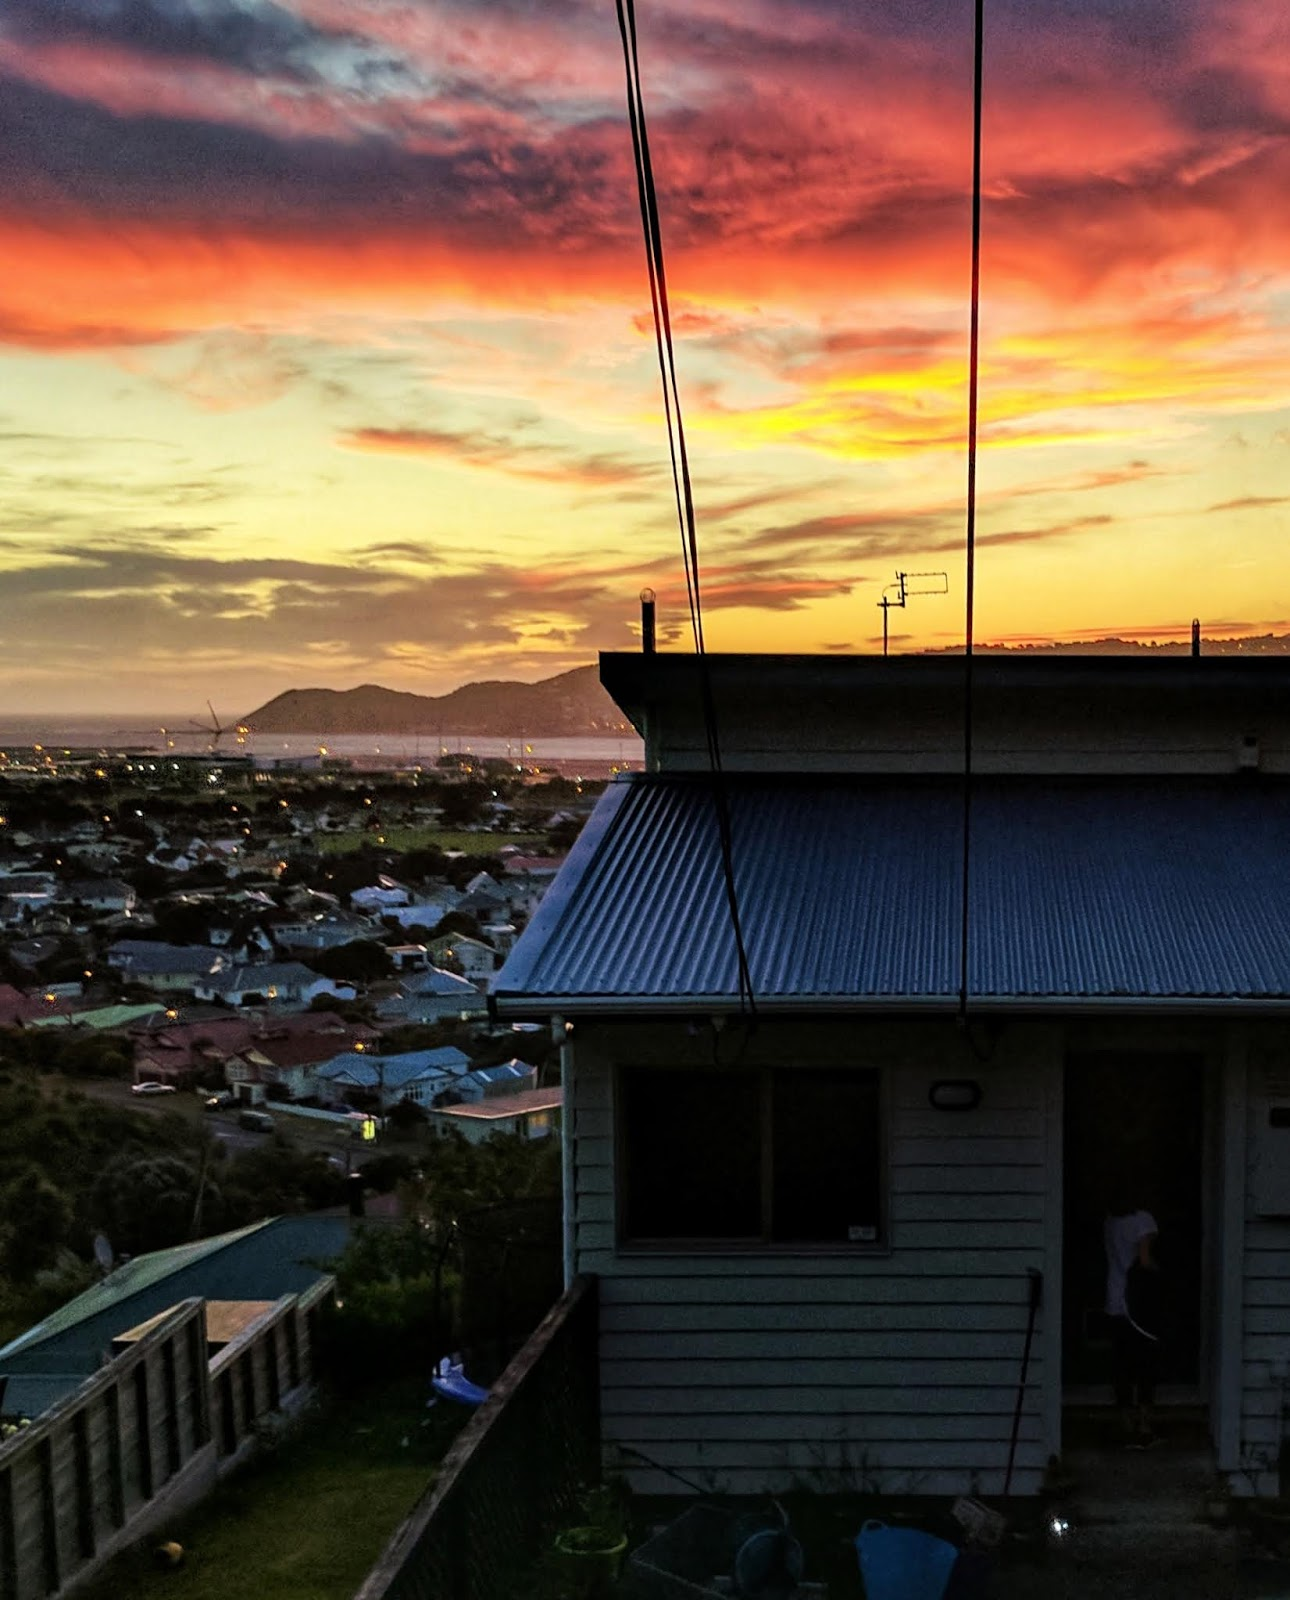 Sunset and house, looking out over Lyall Bay towards the South Island from Townsend Road, Miramar (Wellington, NZ)